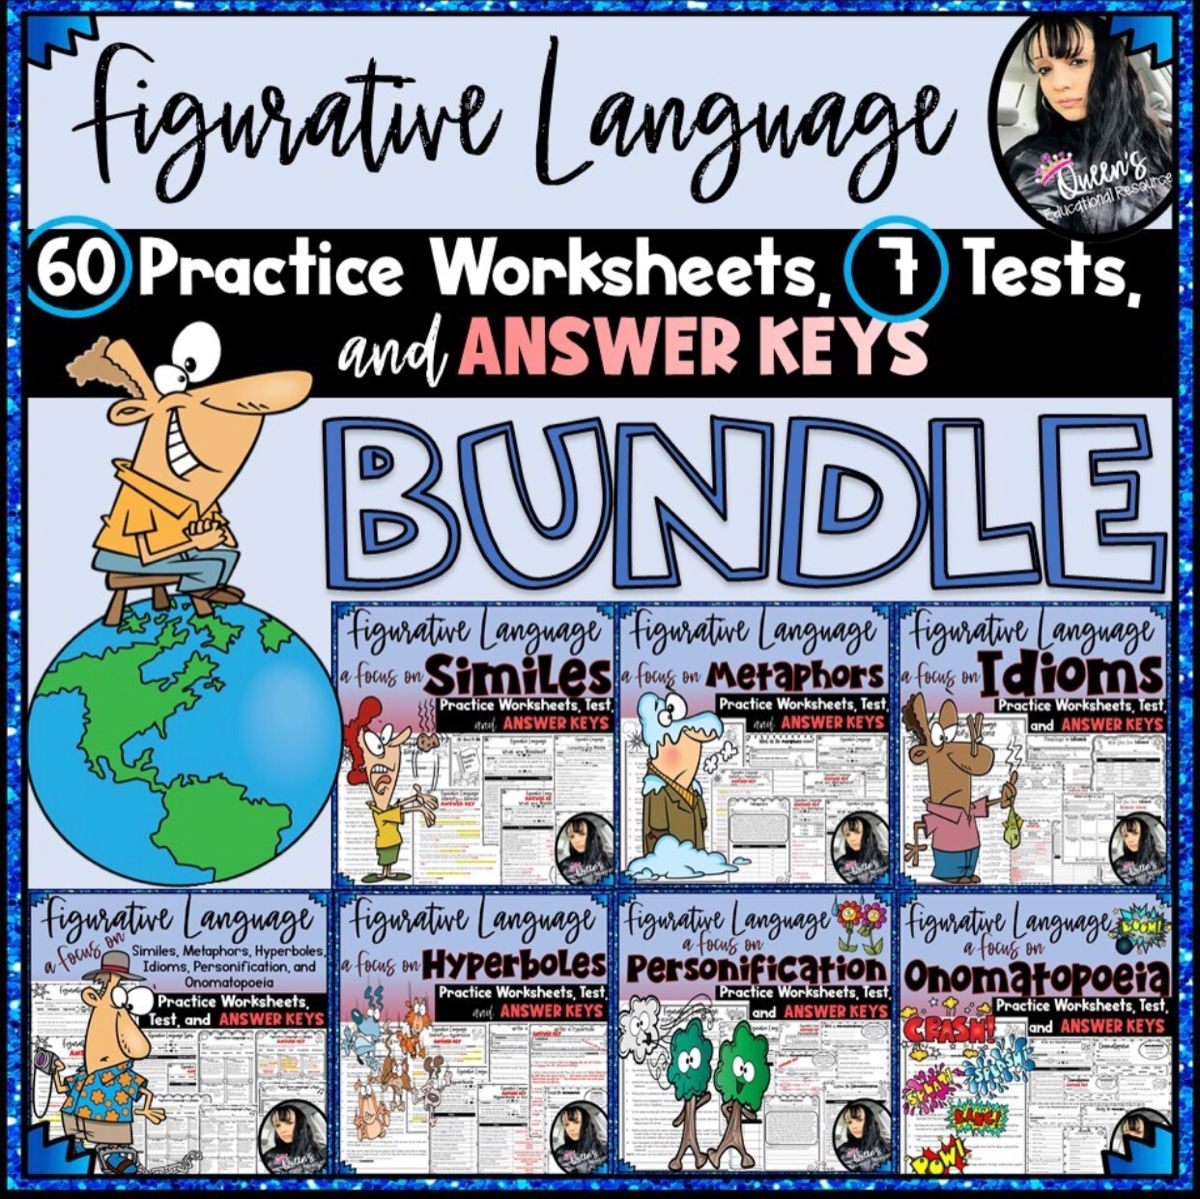 Figurative Language Practice Worksheets, Tests, and Answer ...